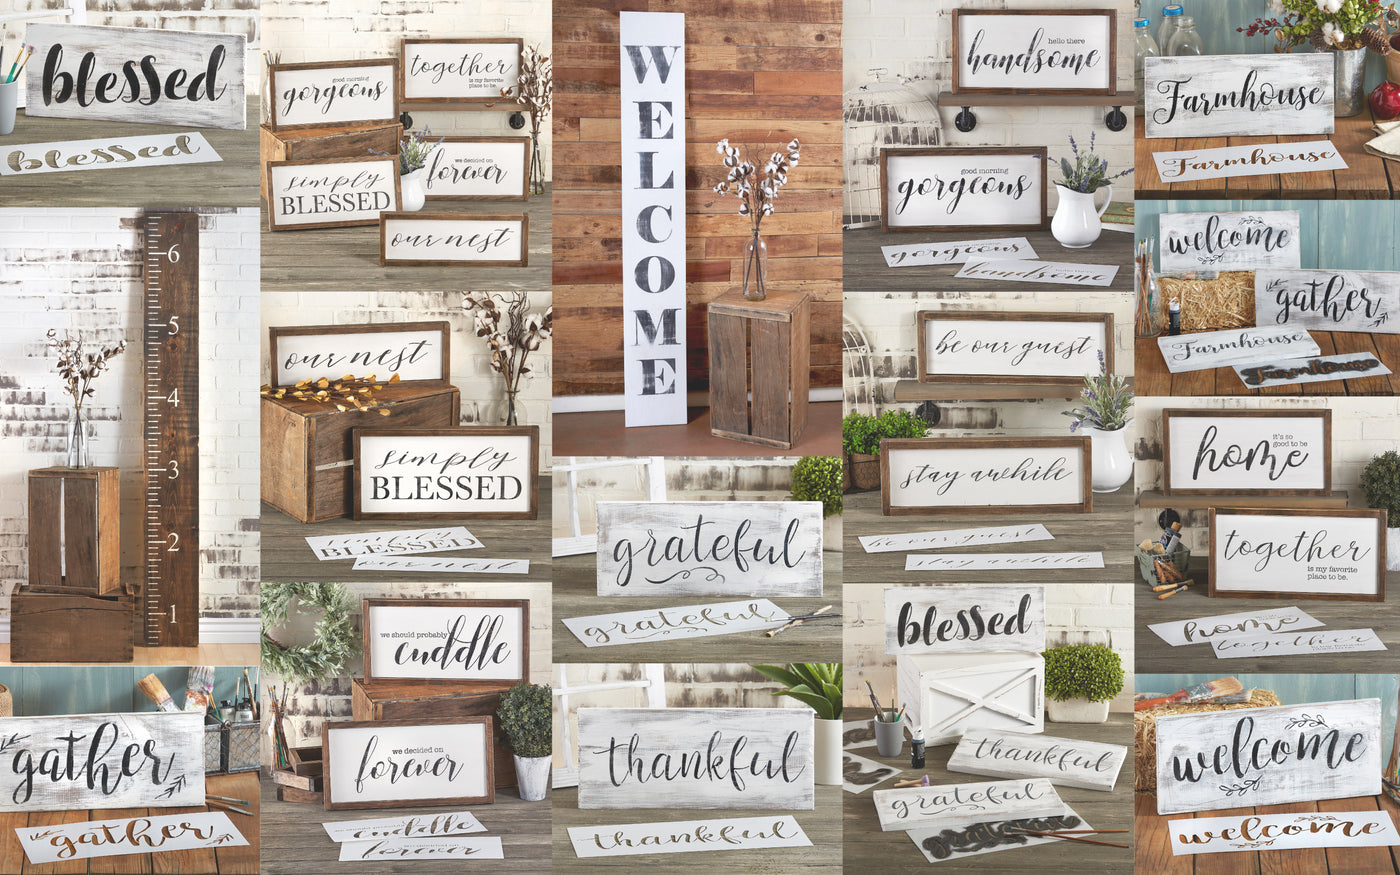 farmhouse sign stencils for painting on wood diy home decor farmhouse sign stencils for painting on wood diy home decor